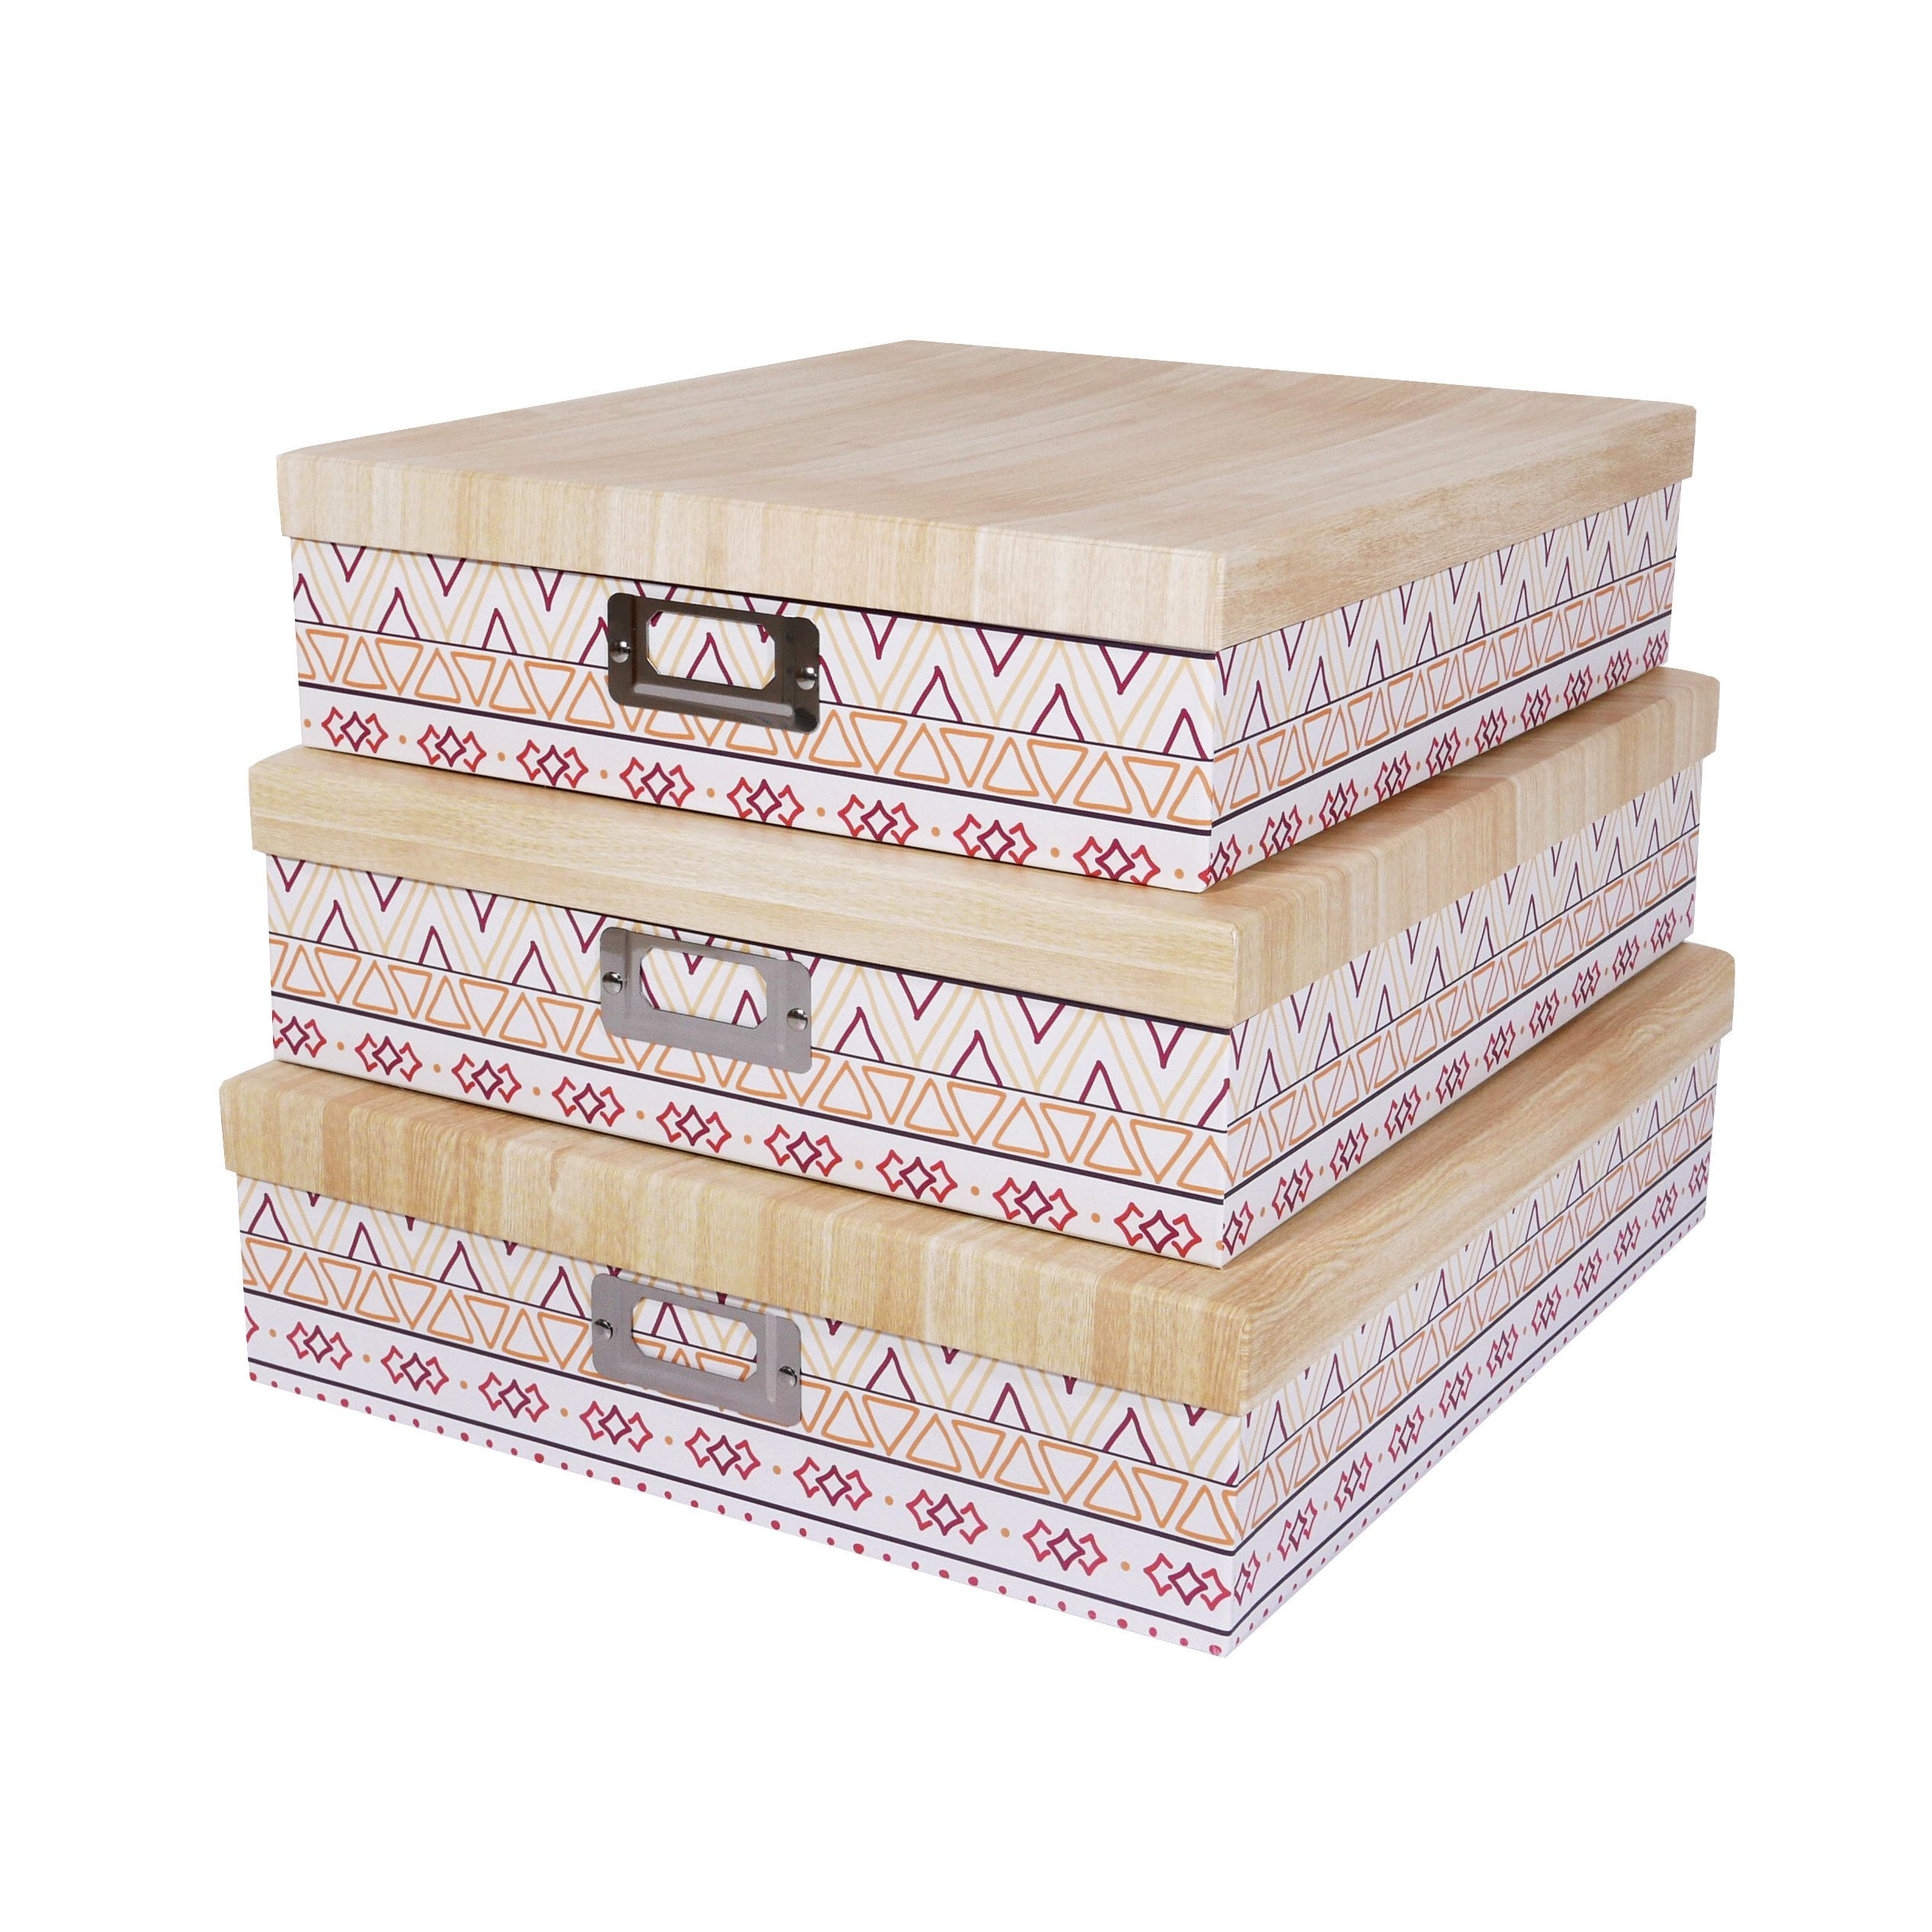 SLPR Decorative Storage Cardboard Boxes with Metal Plate (Set of 3, Ethnic) | Nesting Gift Boxes with Lid for Keepsake Toys Photos Memories Closet Nursery Office Bedroom Decoration by SLPR (Image #1)